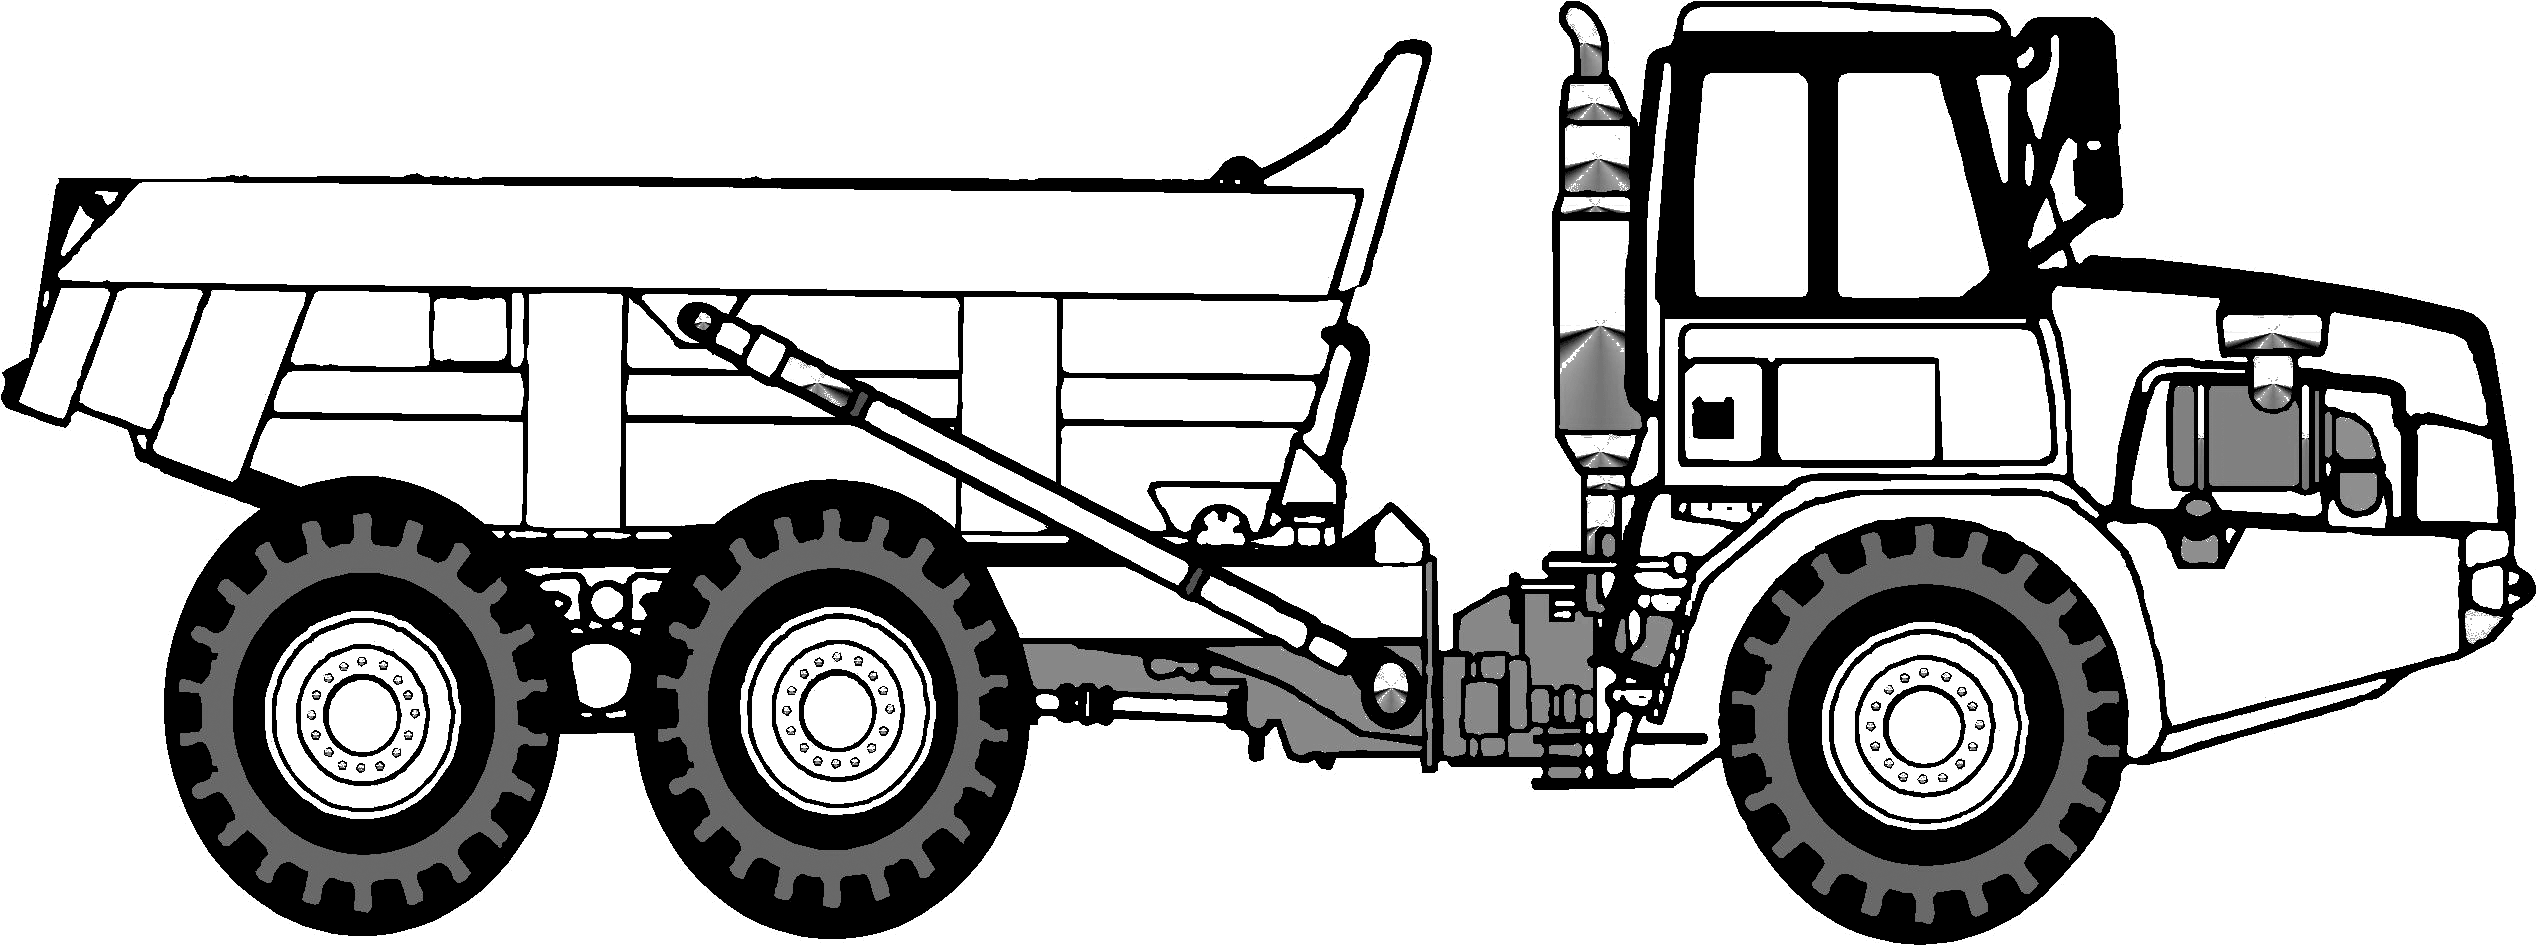 Articulated Vehicles Clipart Clipground